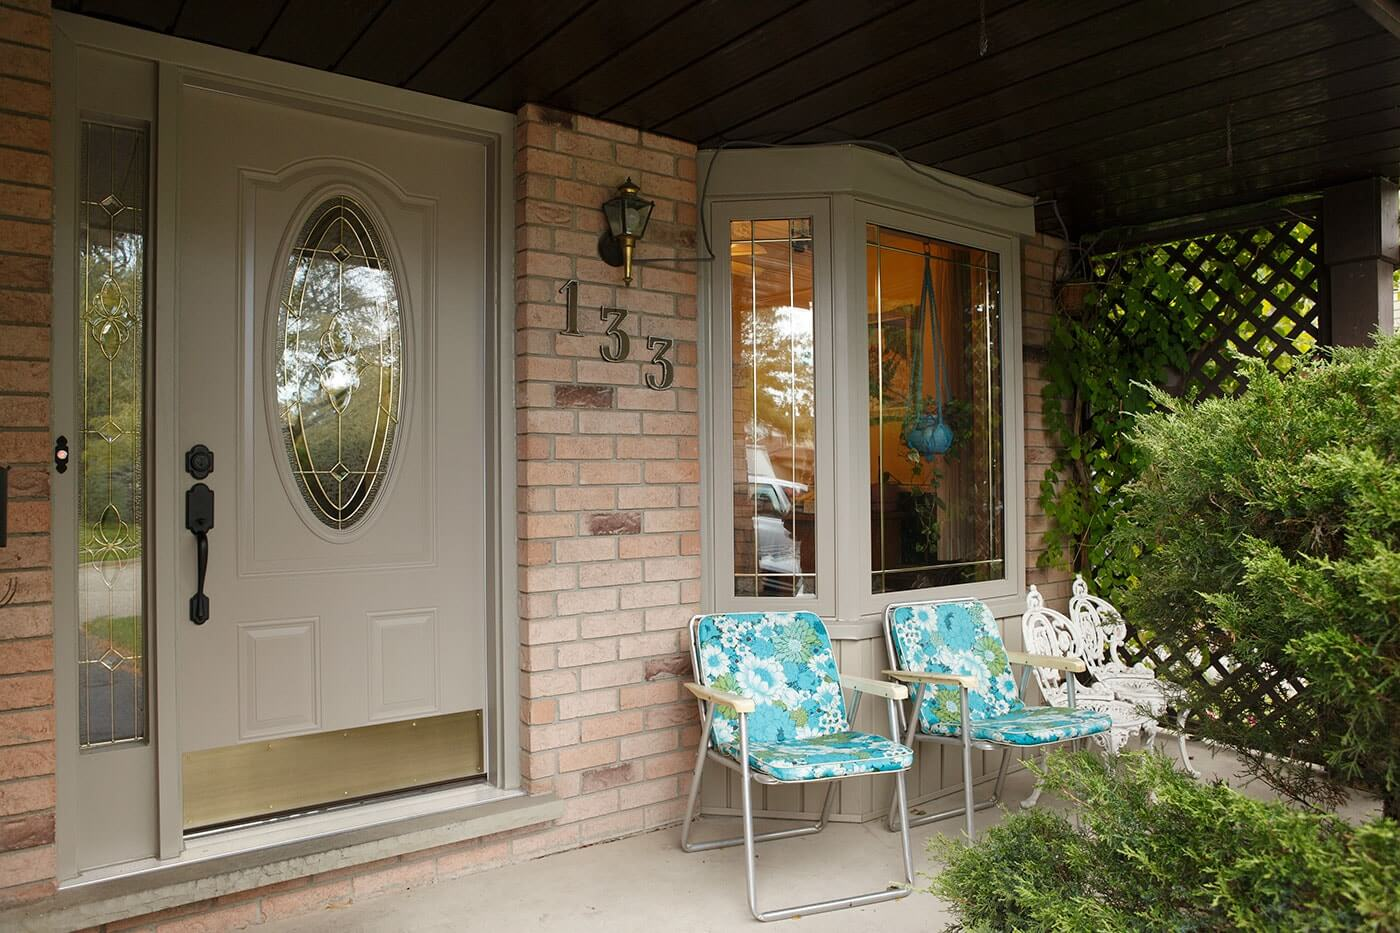 Front Porch of Home With Custom Steel Entry Door System and Large Bay Window